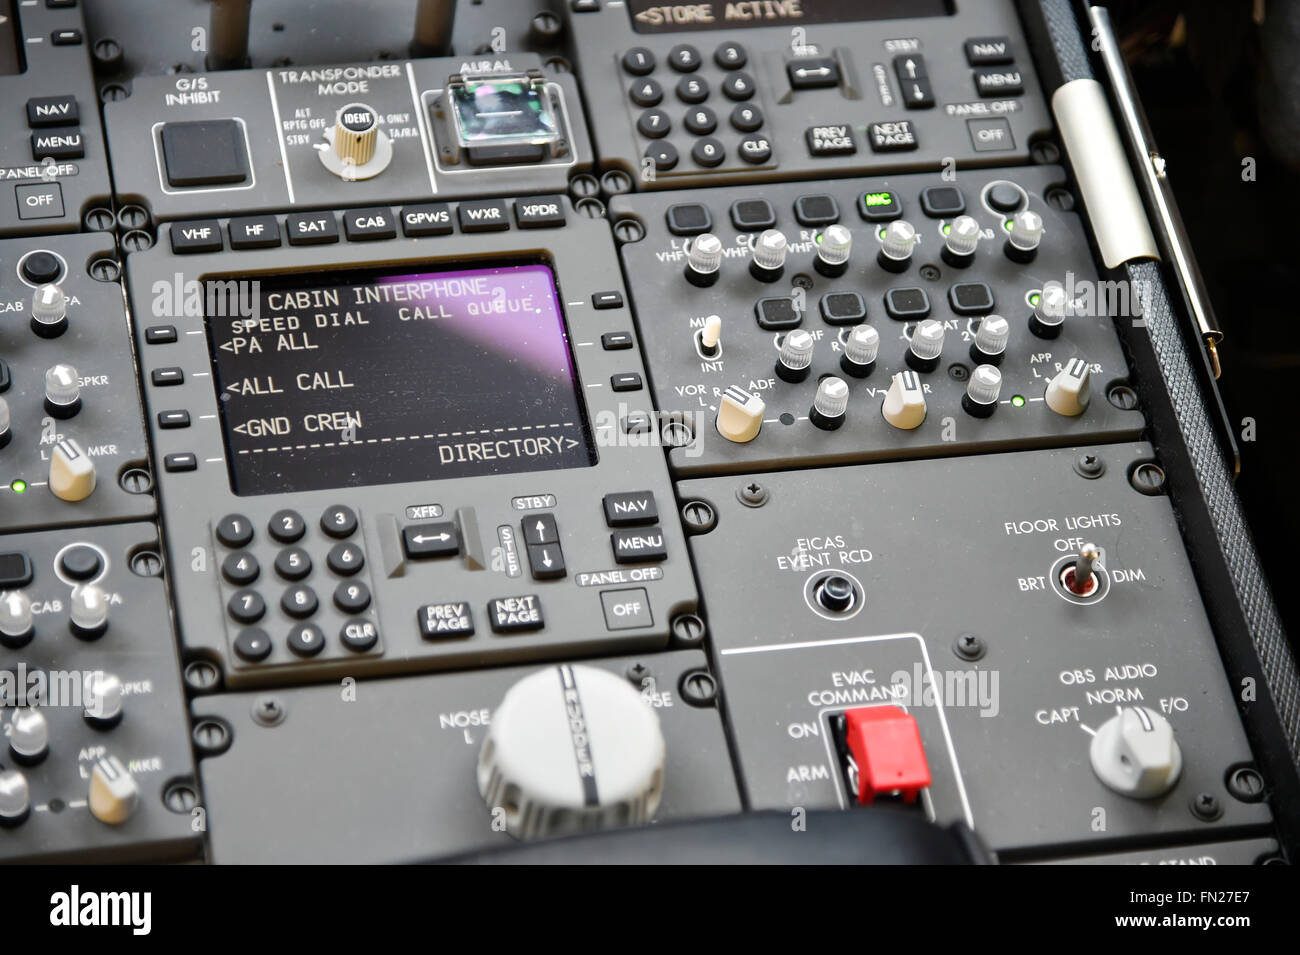 Boeing 787 Wiring Free Download Wiring Diagrams Pictures Wiring